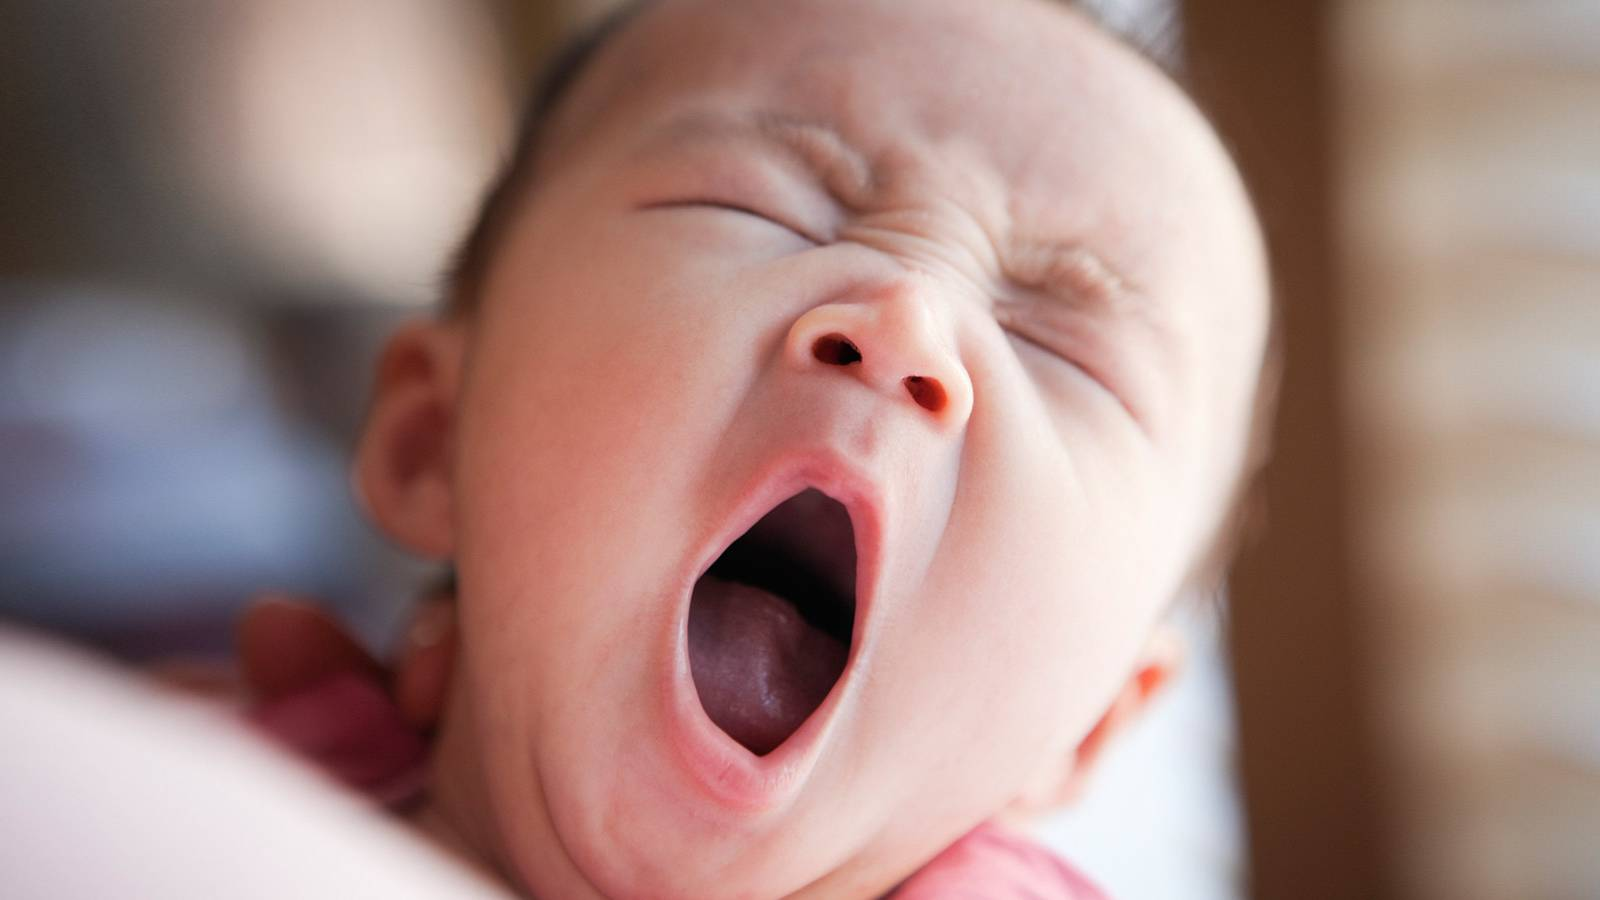 Babies-6-reasons-why-baby-isn't-sleeping-2